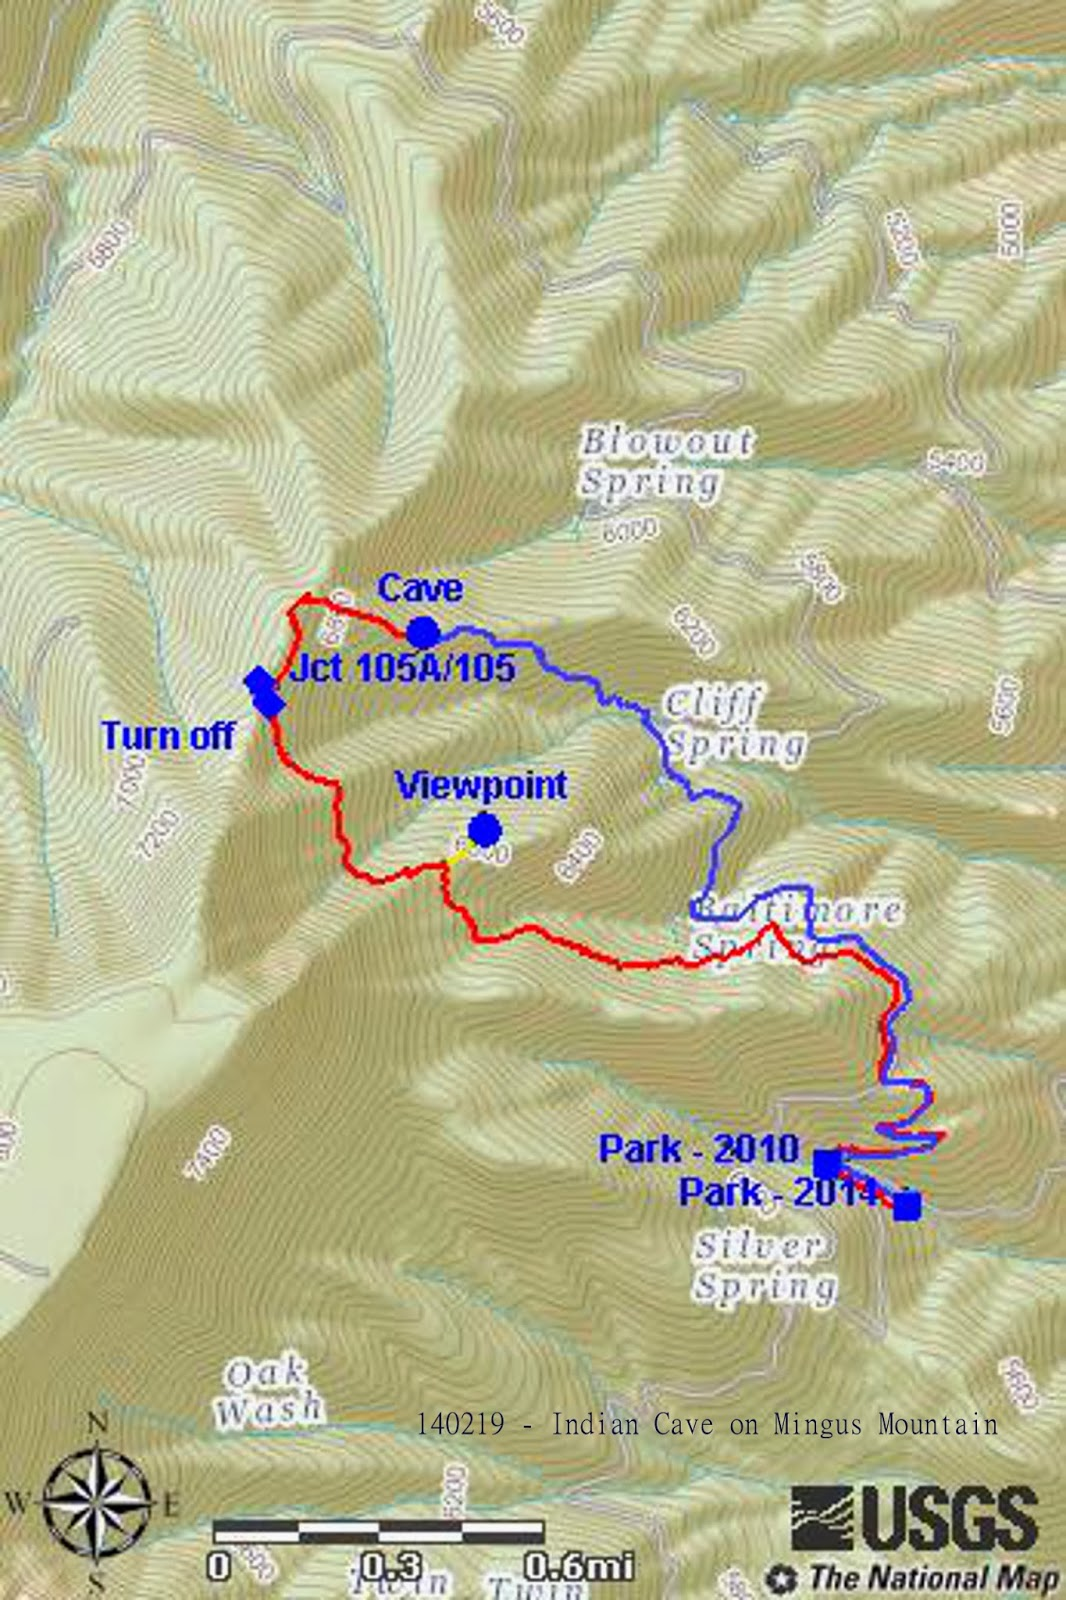 the red track shows our hike to the cave while the blue track shows the route we took back the short yellow track shows the way to the viewpoint we visited